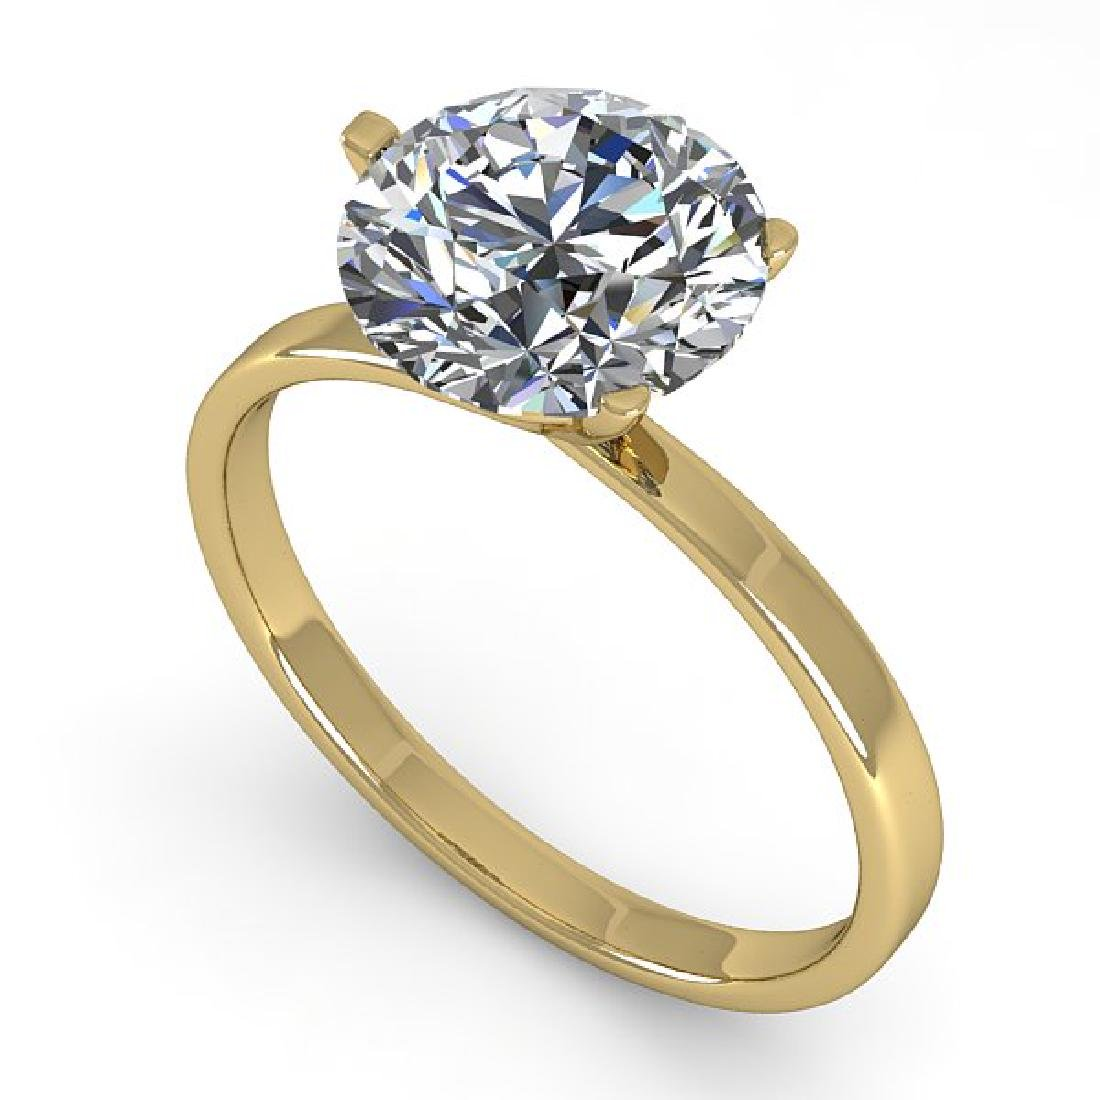 2.01 CTW Certified VS/SI Diamond Engagement Ring 18K